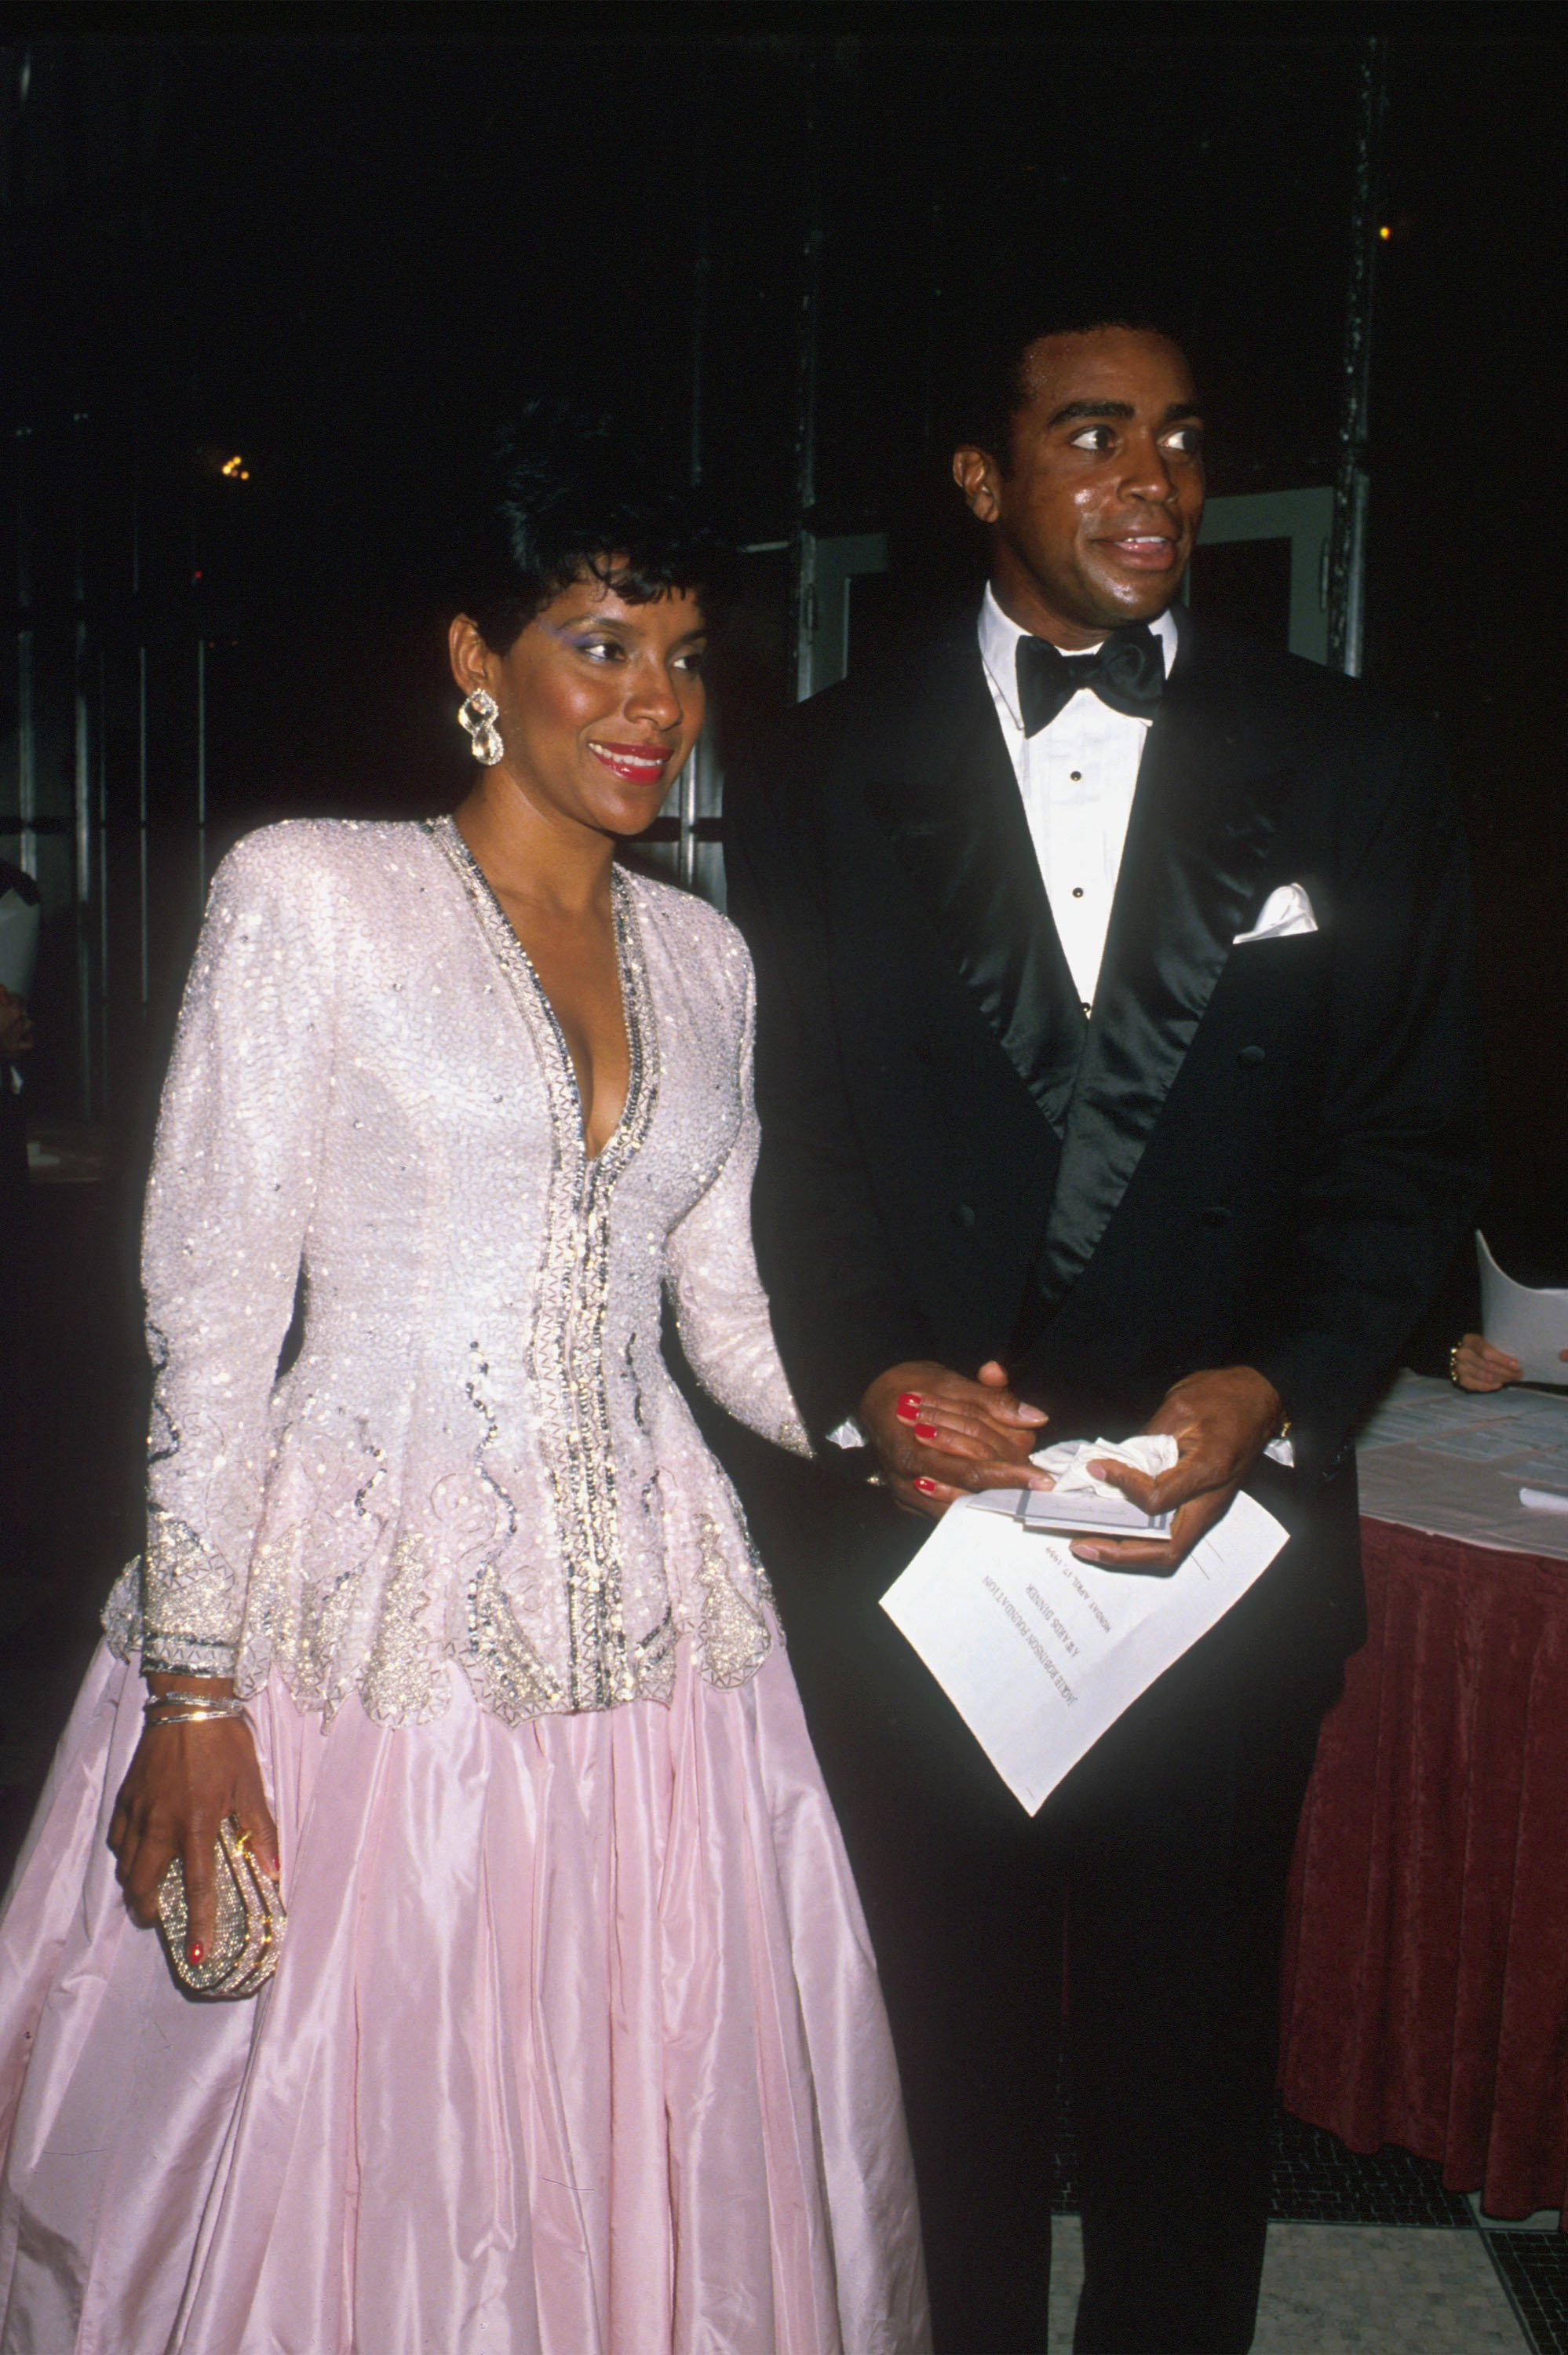 Phylicia Rashad and husband/sportscaster Ahmad Rashad arrive at an event in New York City, April 15, 1989 | Photo: GettyImages